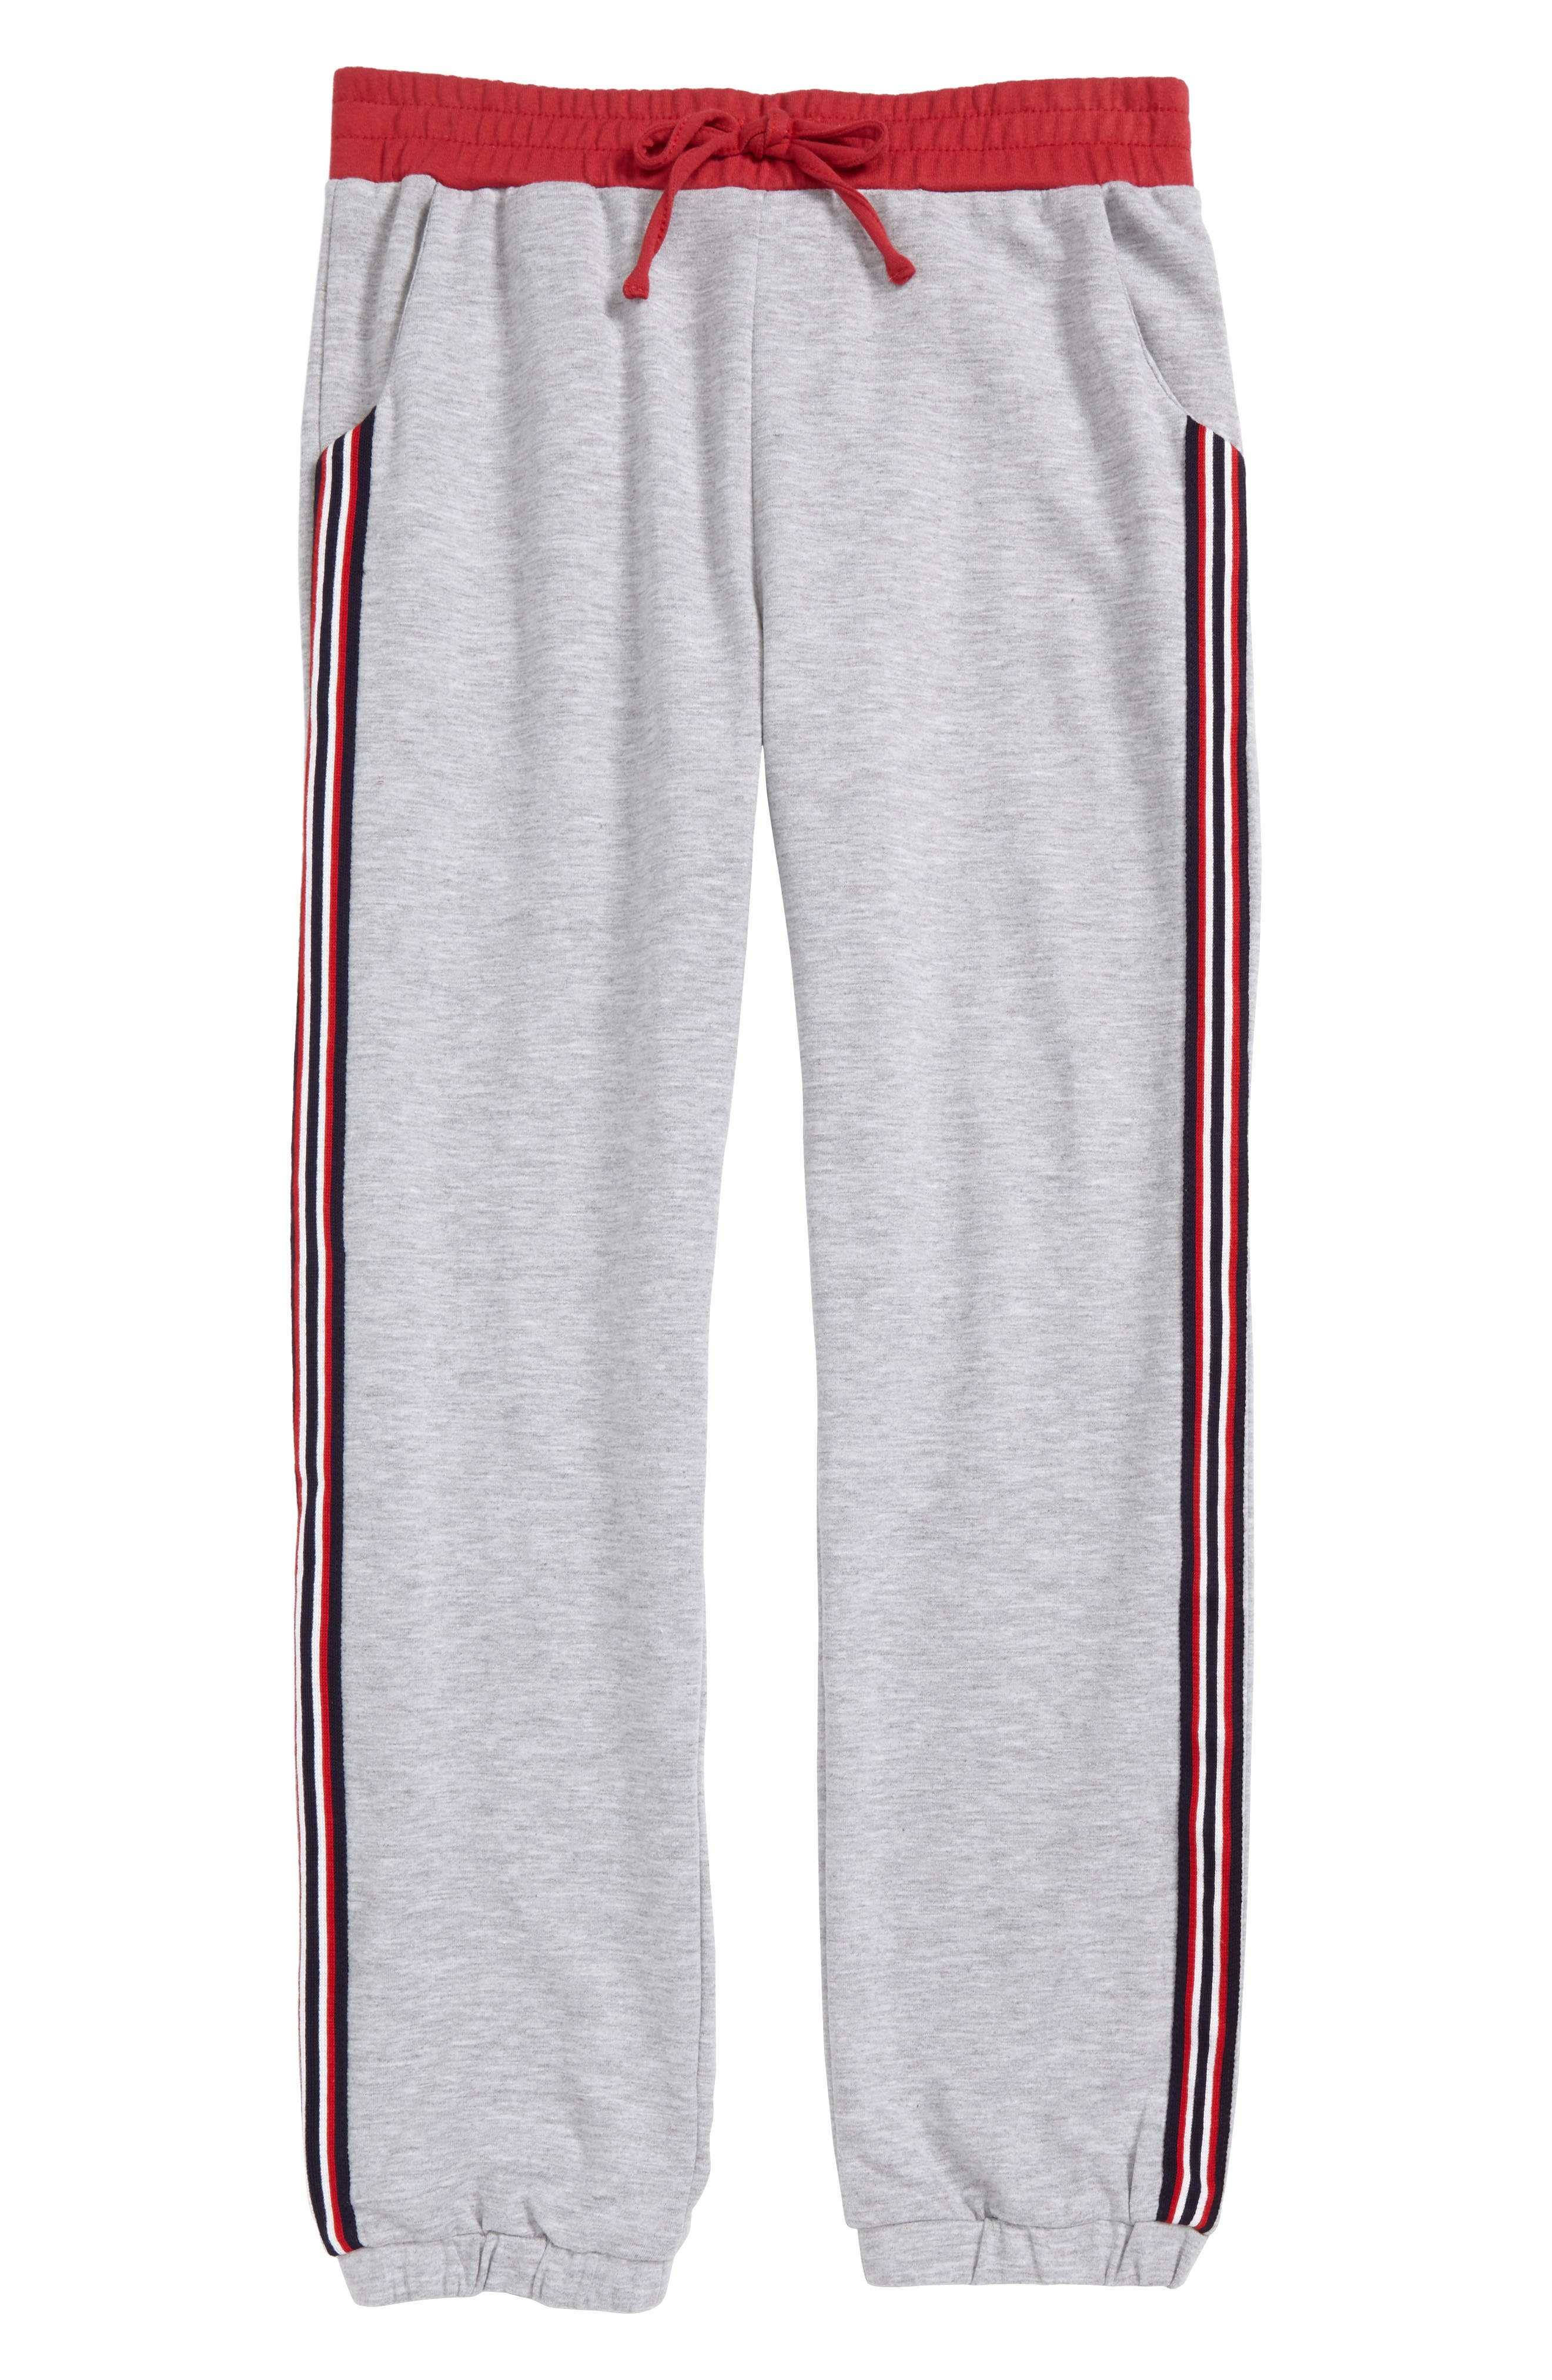 Side Stripe Sweatpants,                         Main,                         color, Heather Grey/ Red